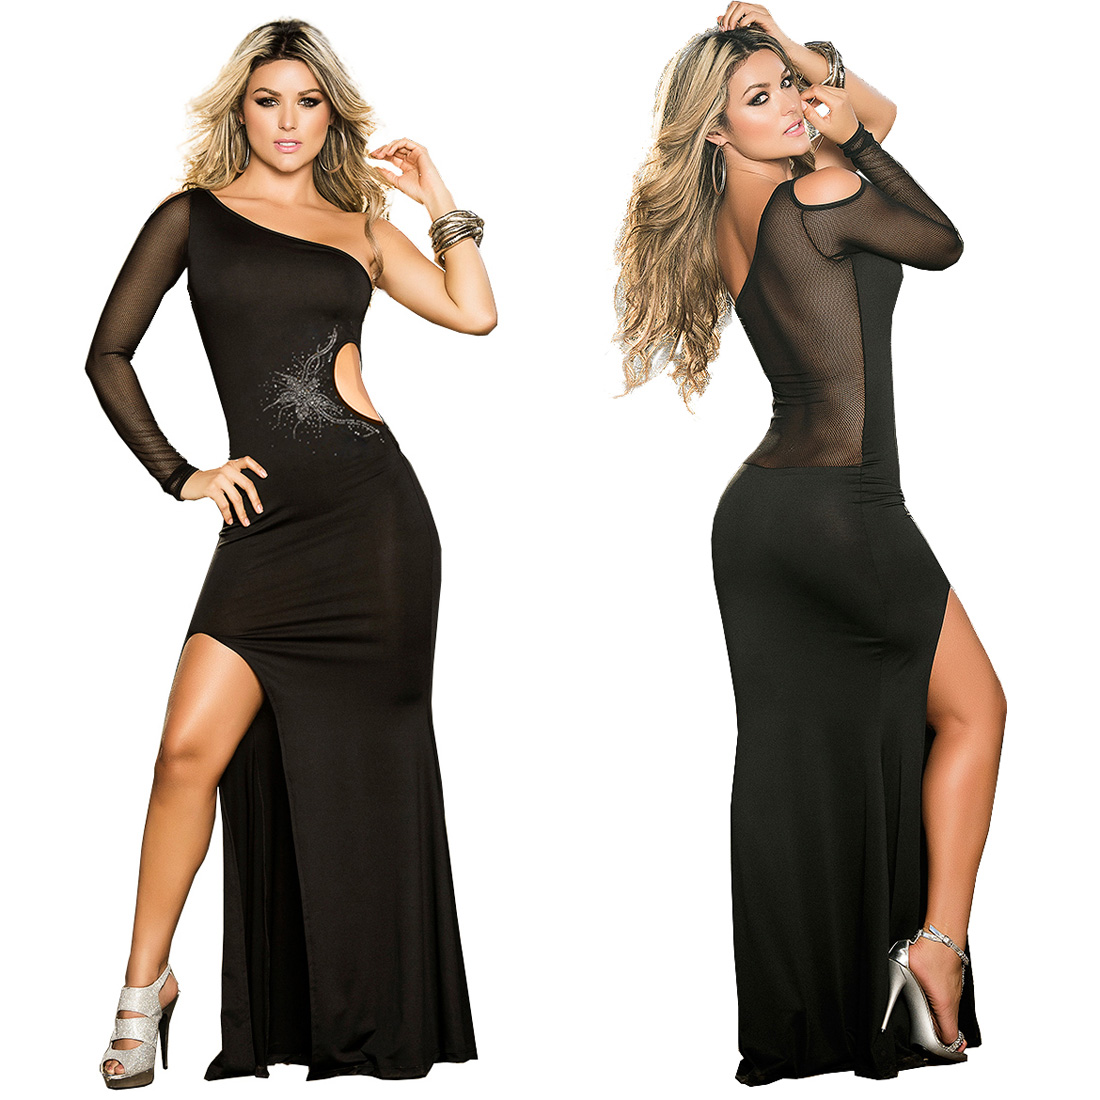 Sexy cocktail dresses uk